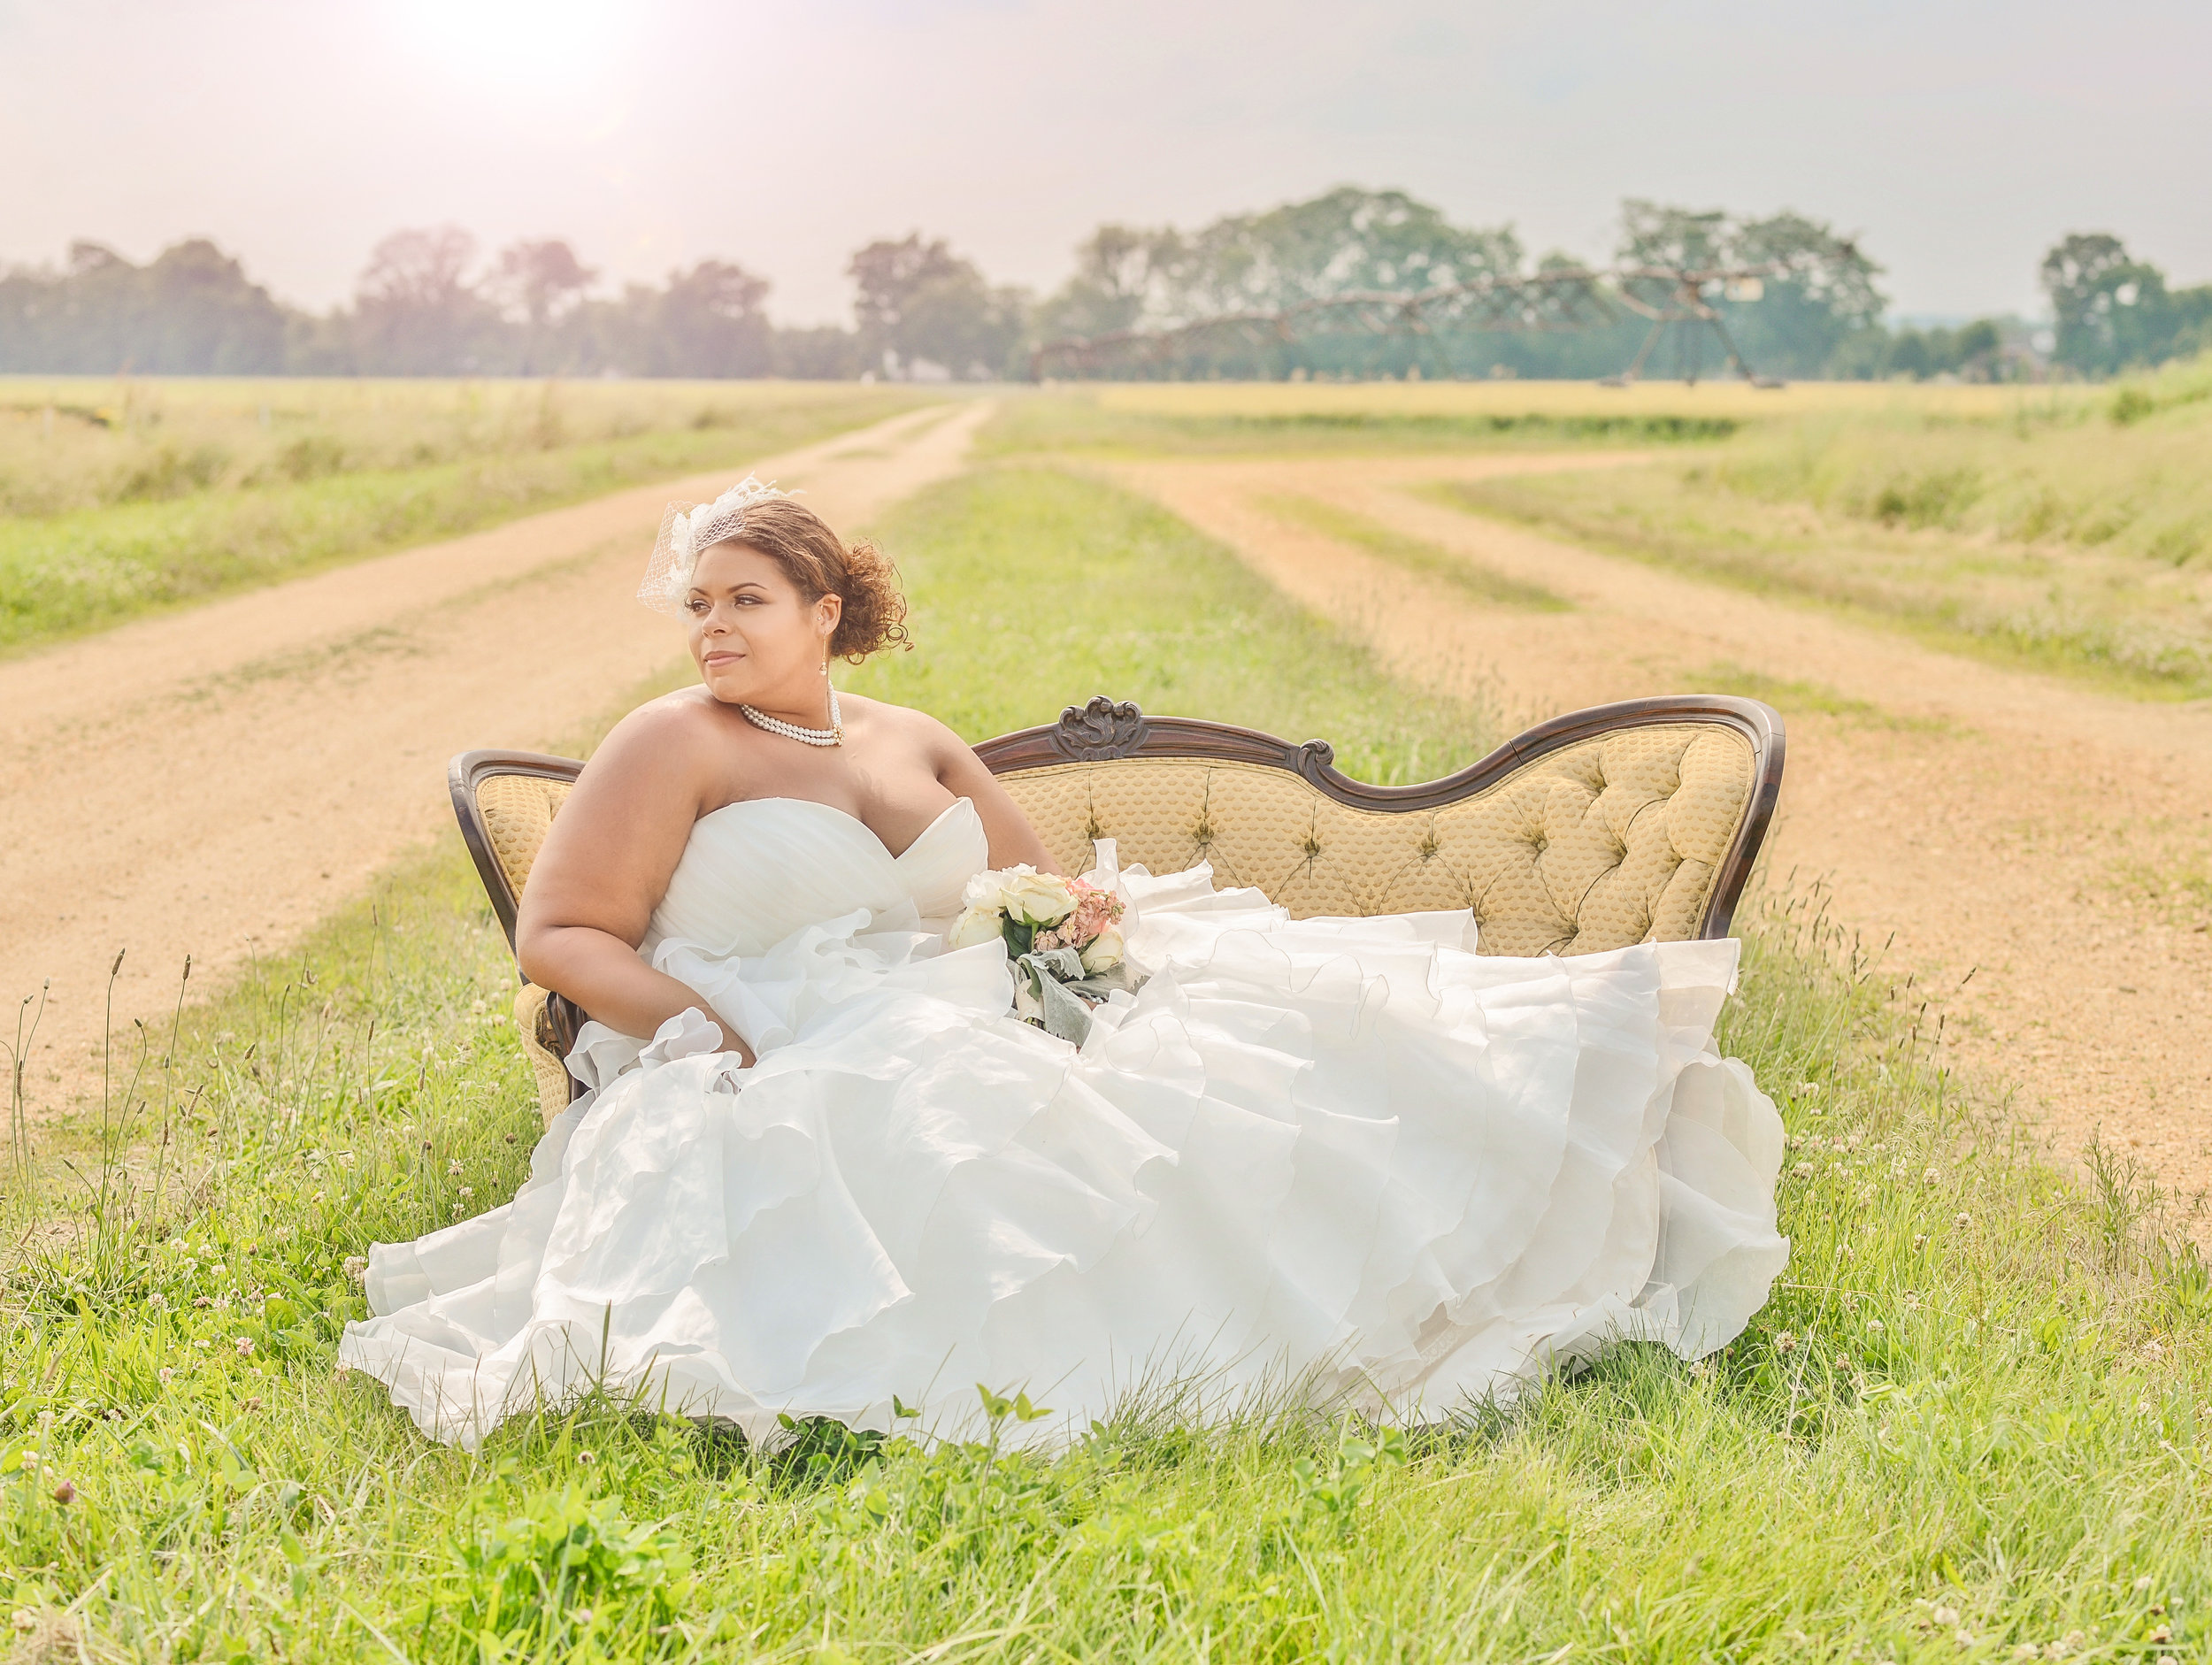 $1600 - 6 HoursThis option is ideal for couples seeking to keep it simple on their wedding day. All the important moments will be photographed to ensure you have perfect memories of your day.